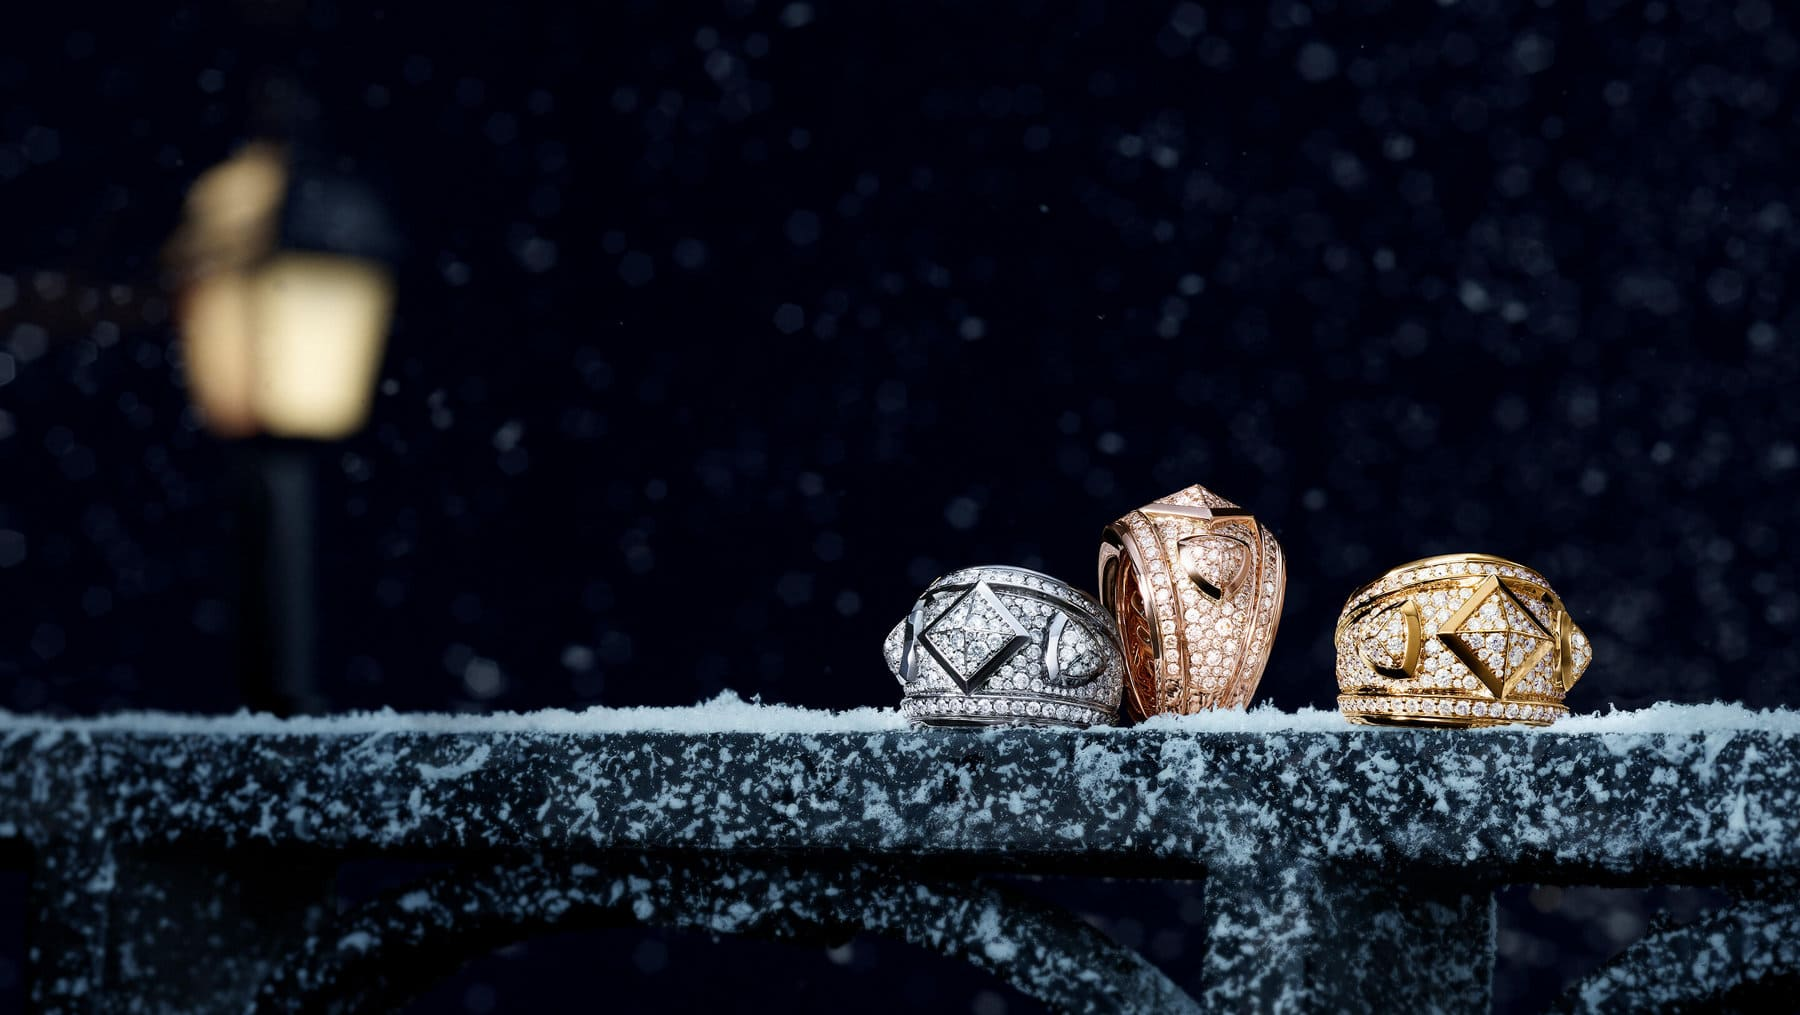 A color photograph shows three David Yurman Renaissance rings scattered atop a snow-dusted metal ledge at night. The women's jewelry is crafted from white or yellow gold with pavé white diamonds. In the dark background is the golden glow of a nearby street light.